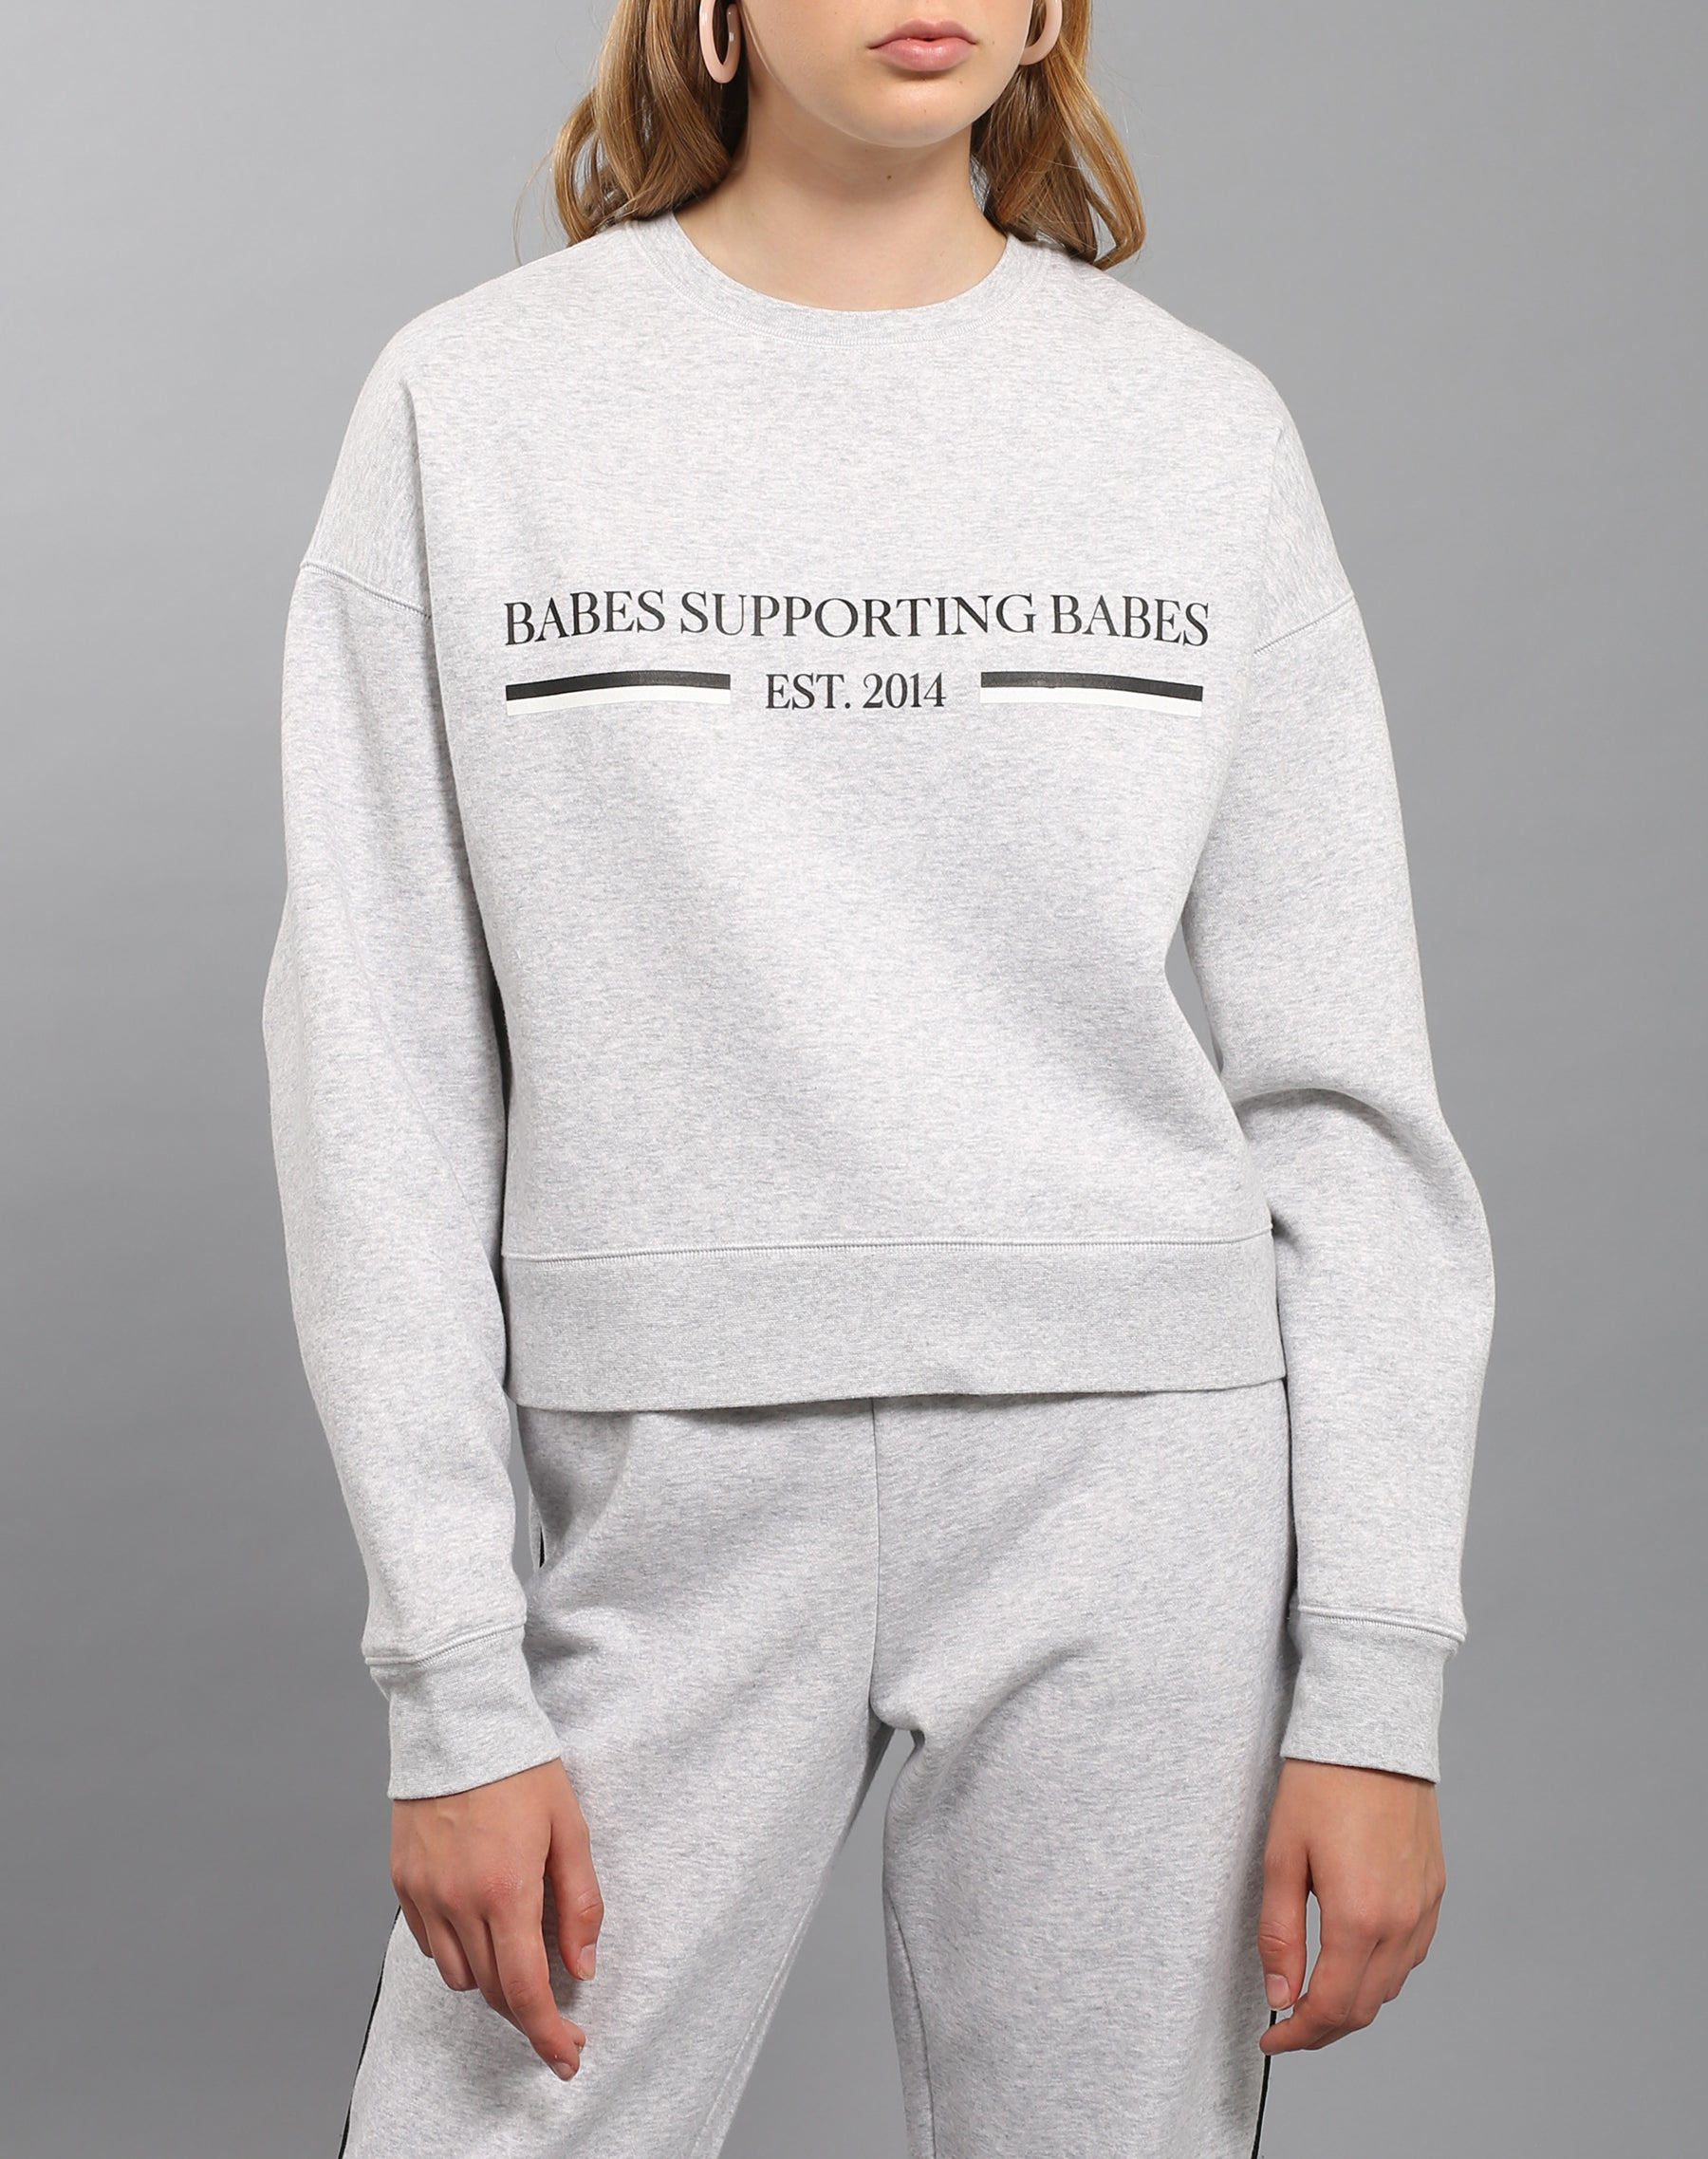 The Babes Supporting Babes little sister crew neck sweatshirt in pebble grey by Brunette the Label.